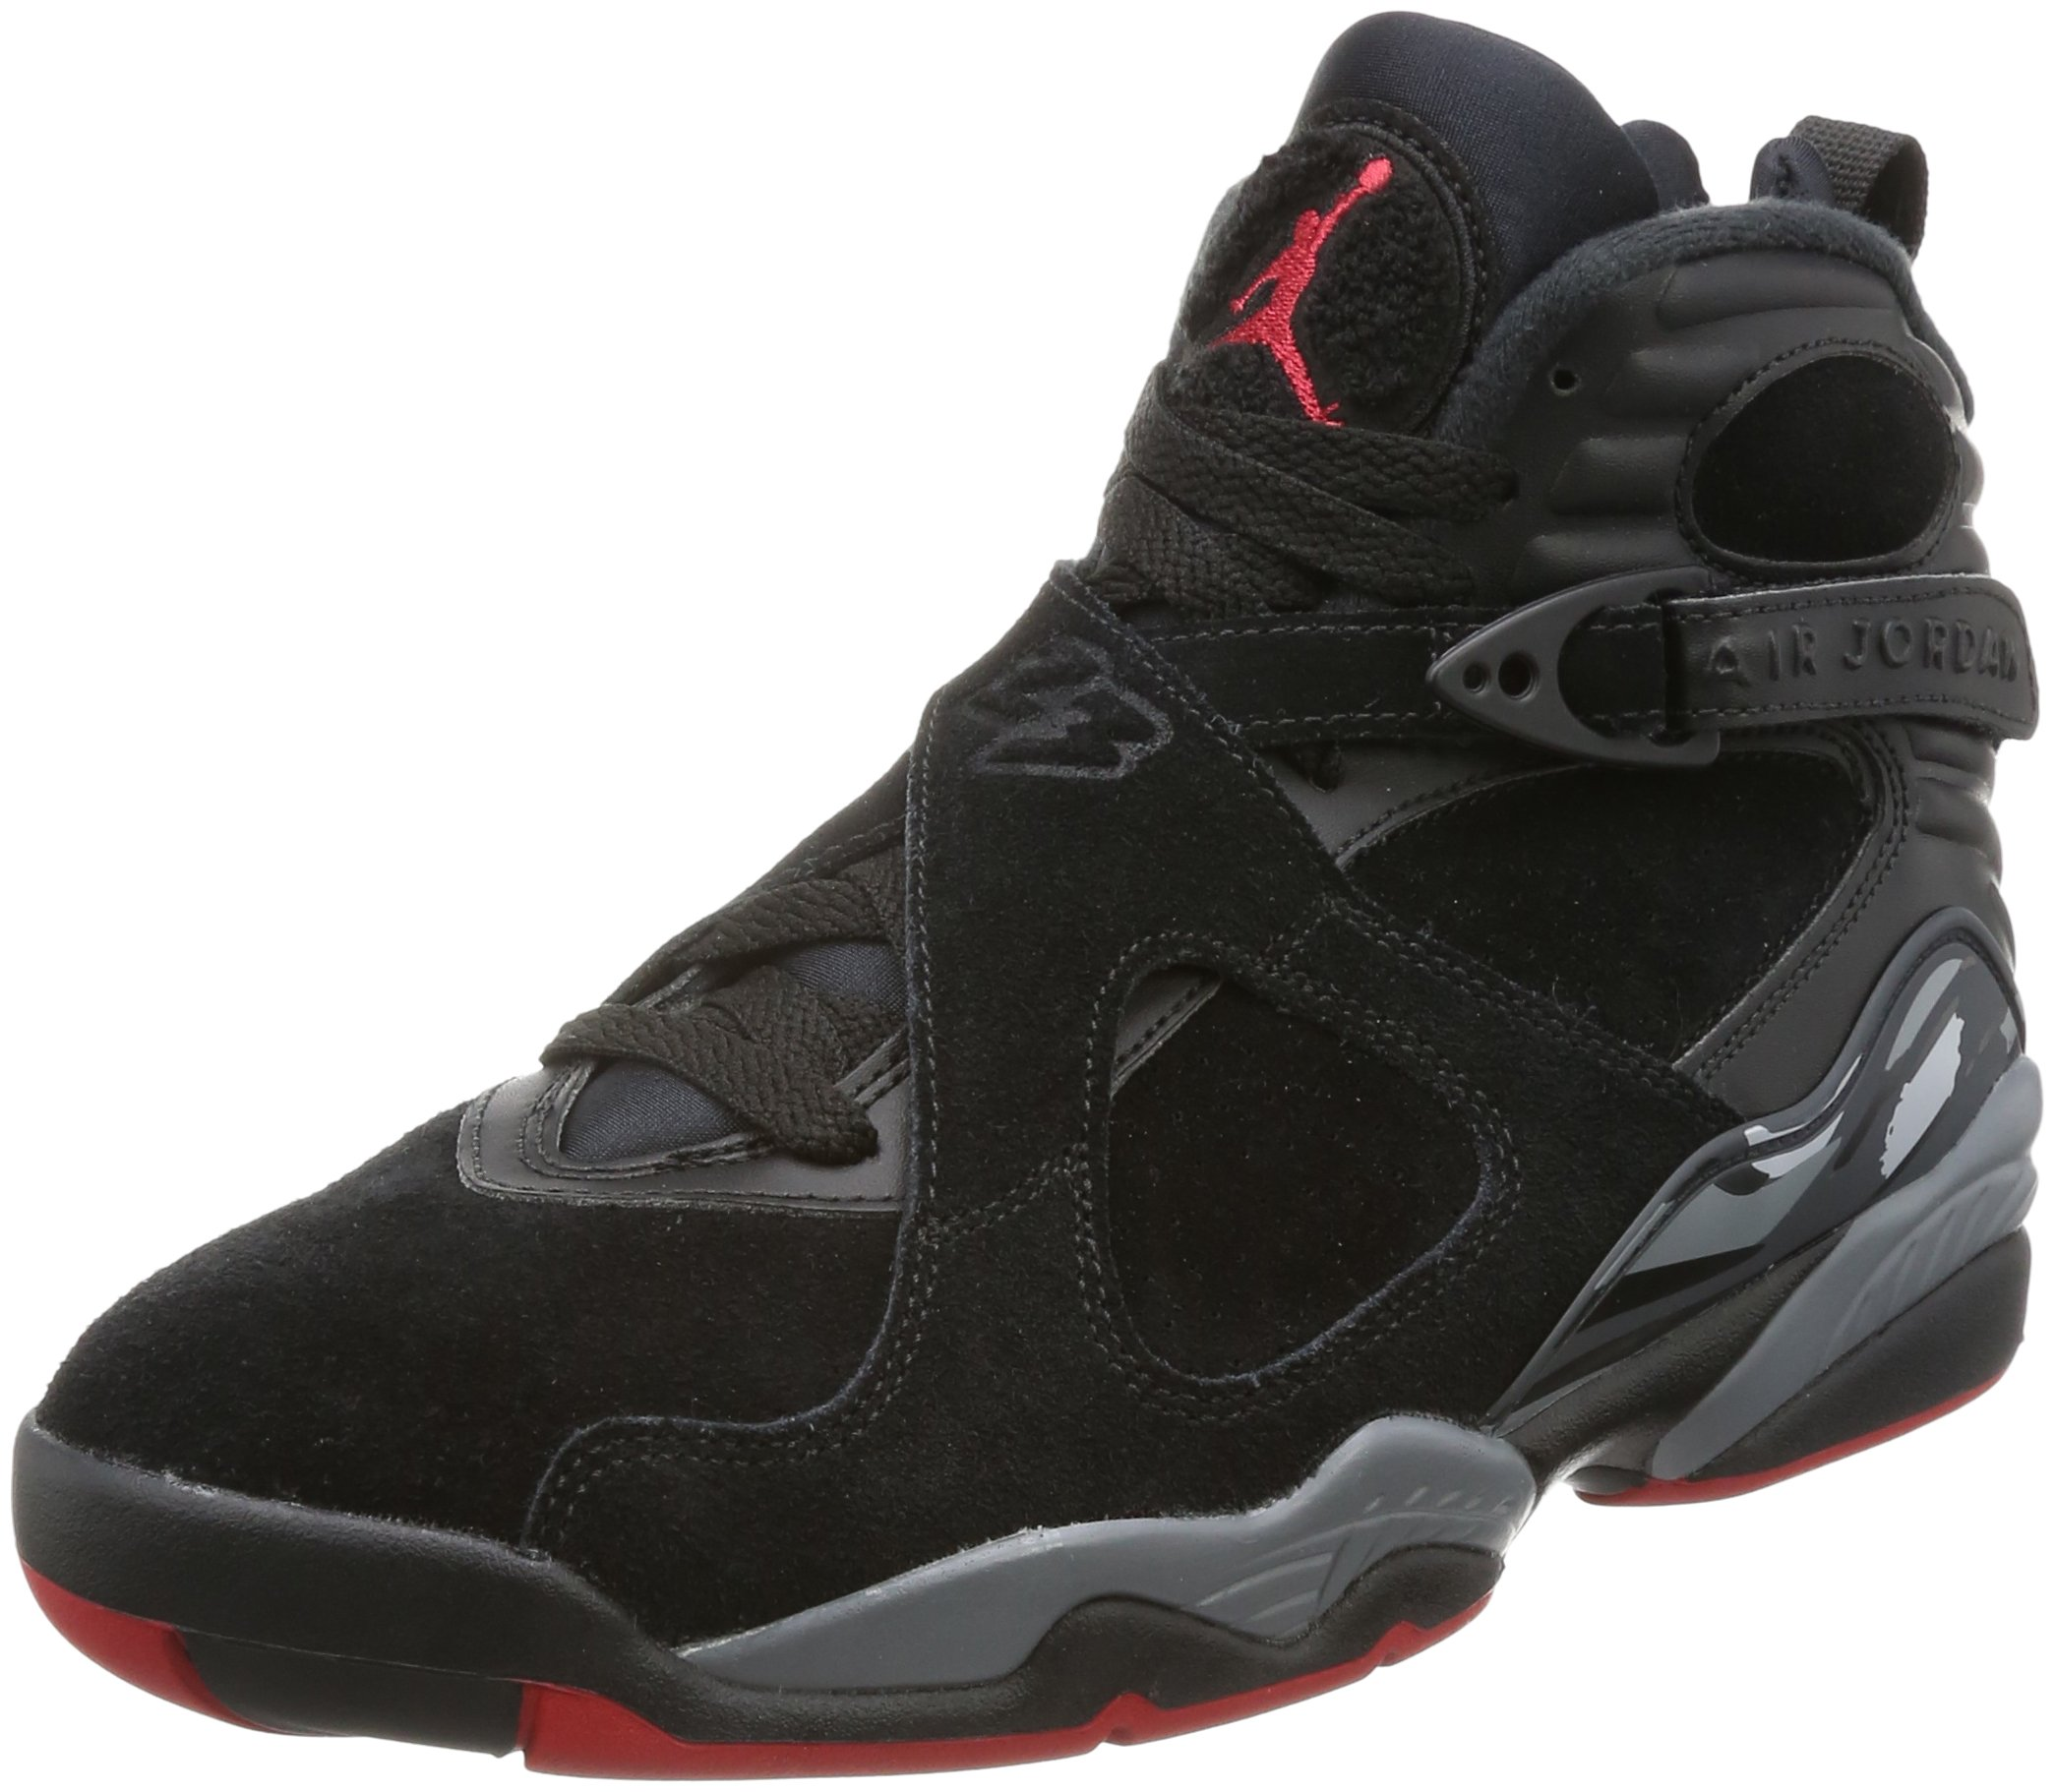 Jordan Air 8 Retro Bred Lifestyle Casual Sneakers Mens Black/Gym Red-Wolf Grey New 305381-022 - 9.5